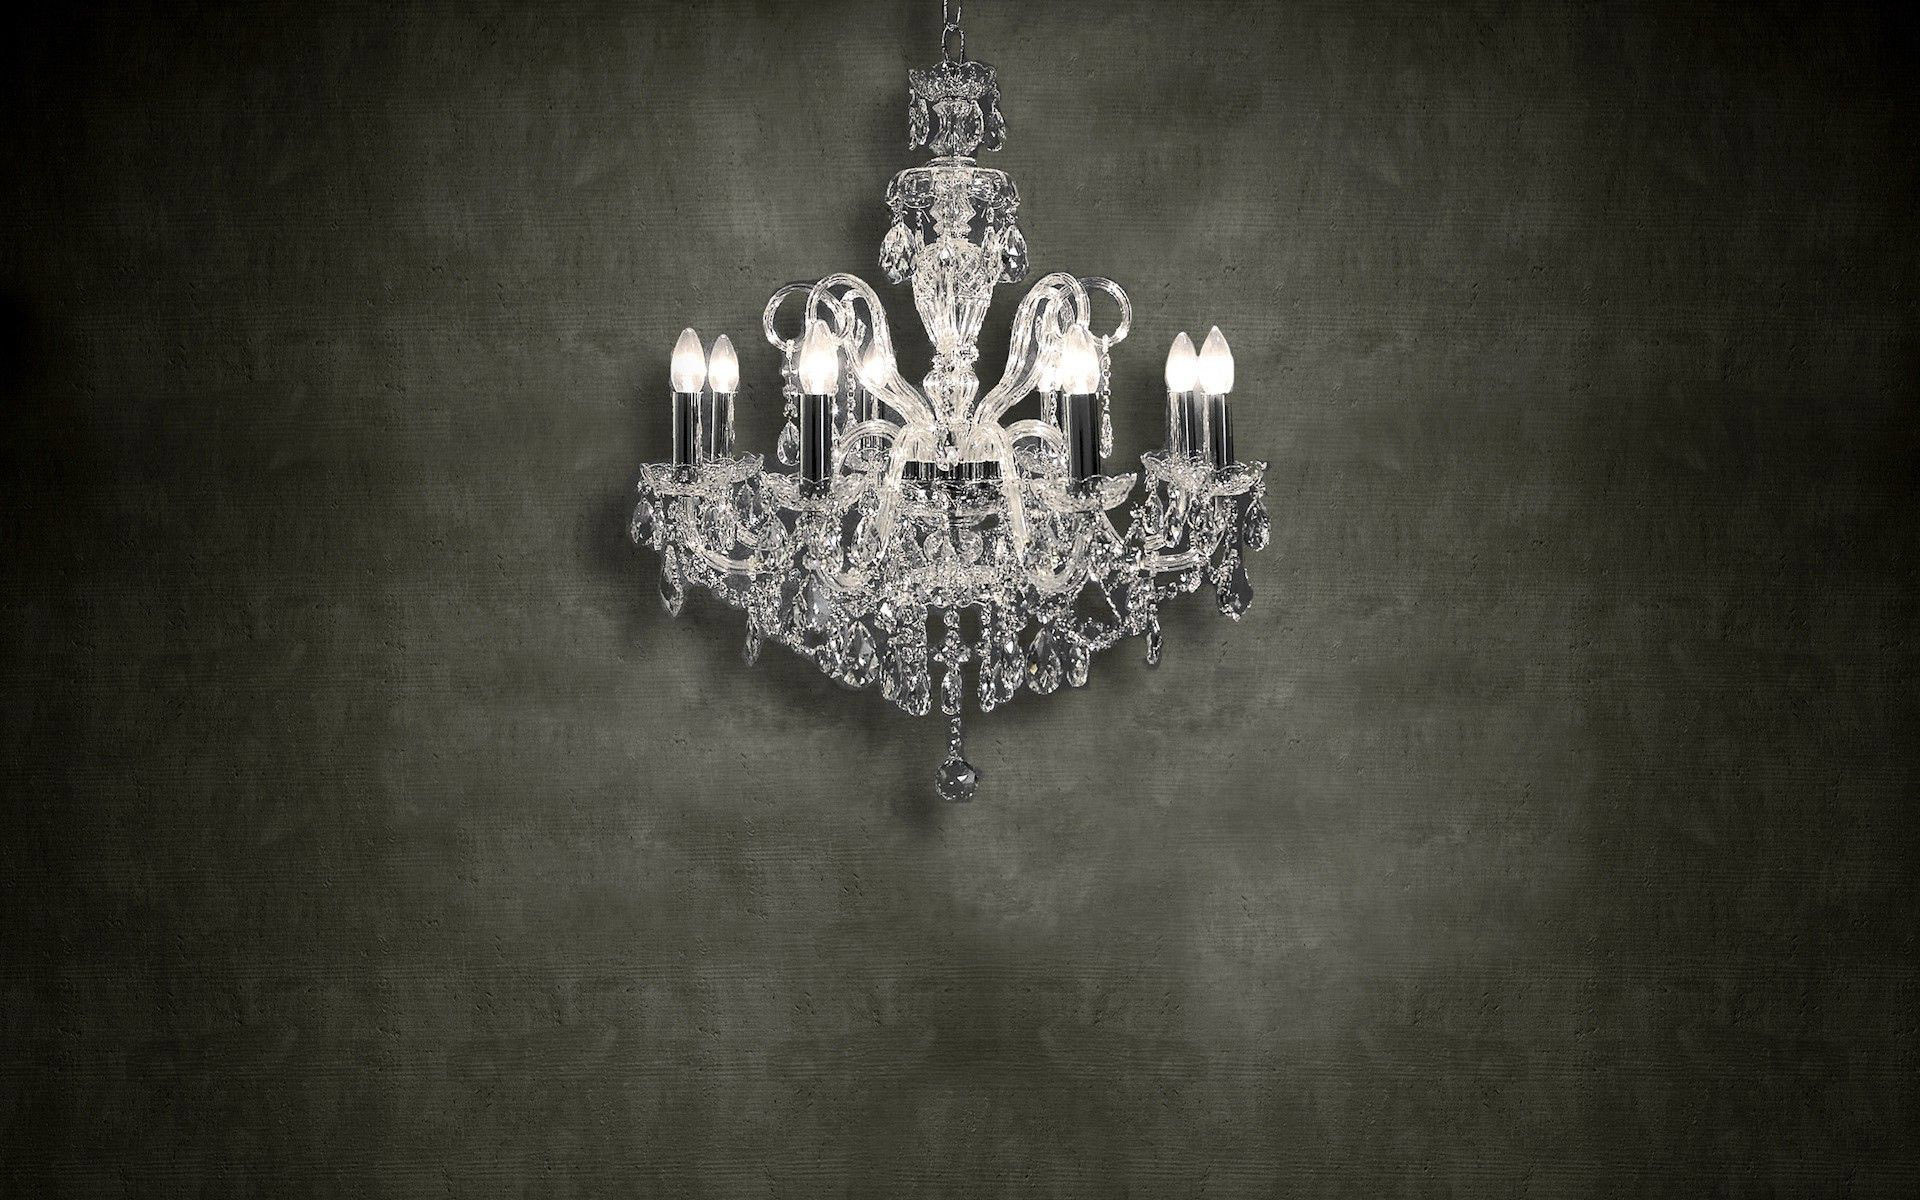 Chandelier Wallpapers and Background Images   stmednet 1920x1200